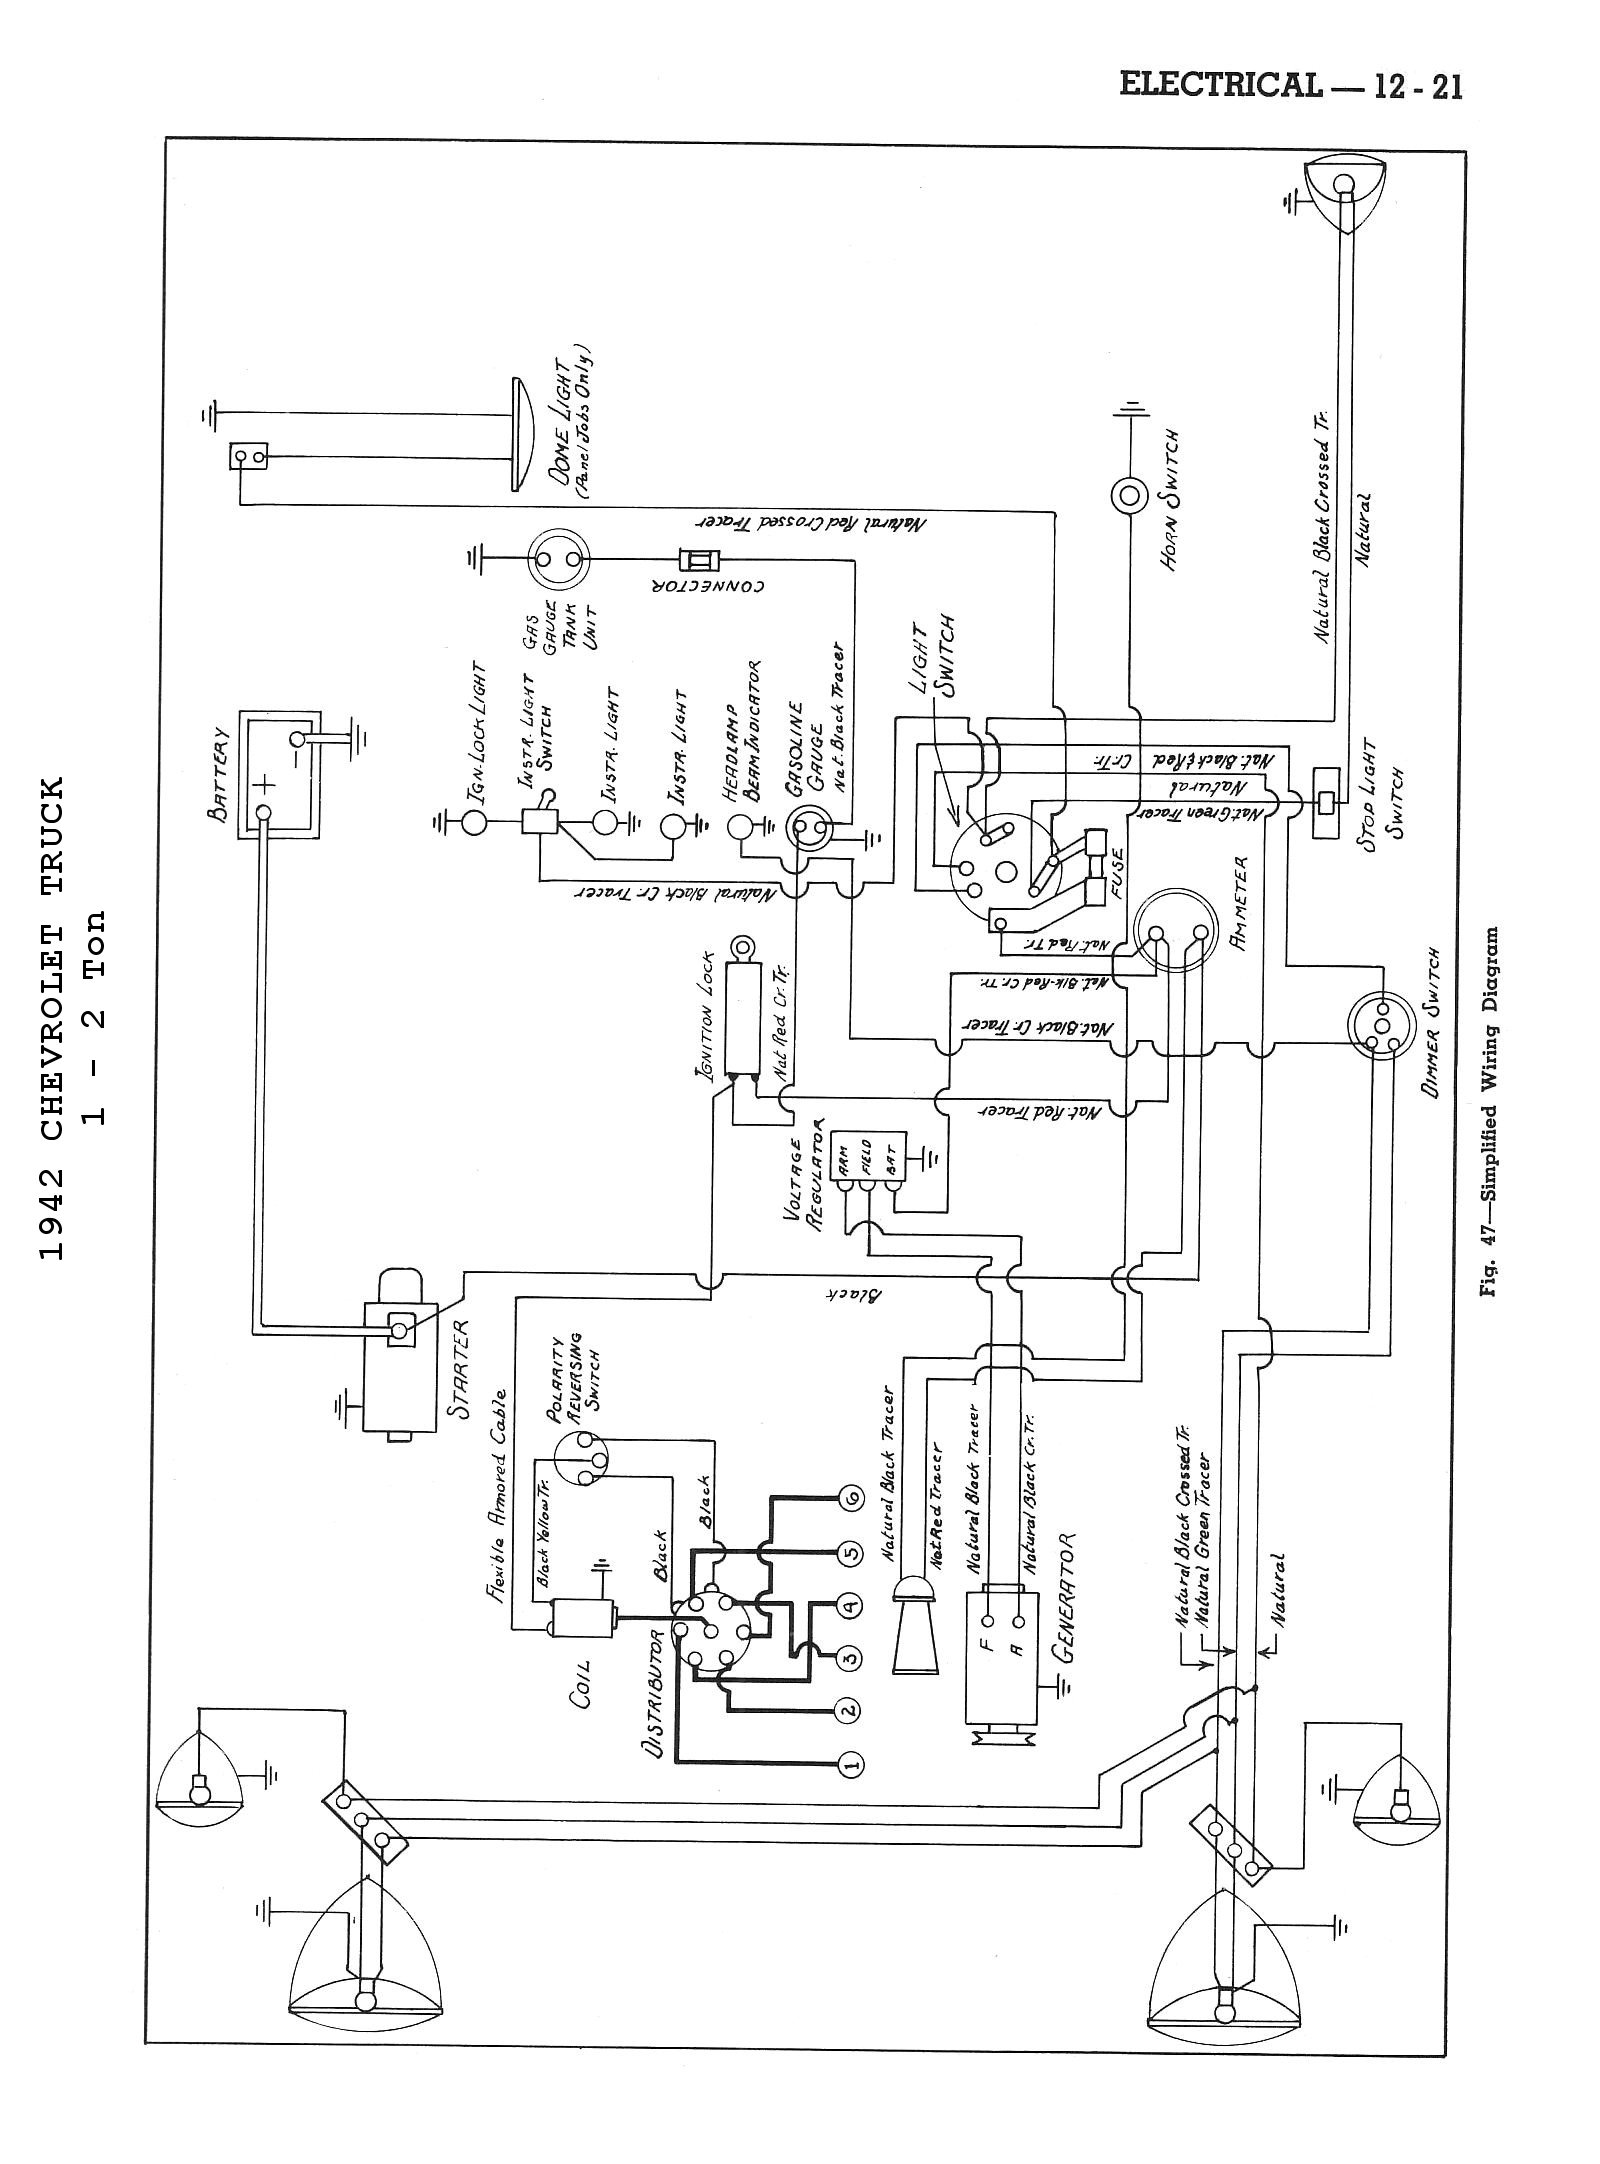 Wiring Manual PDF: 1930 Pontiac Wiring Diagram